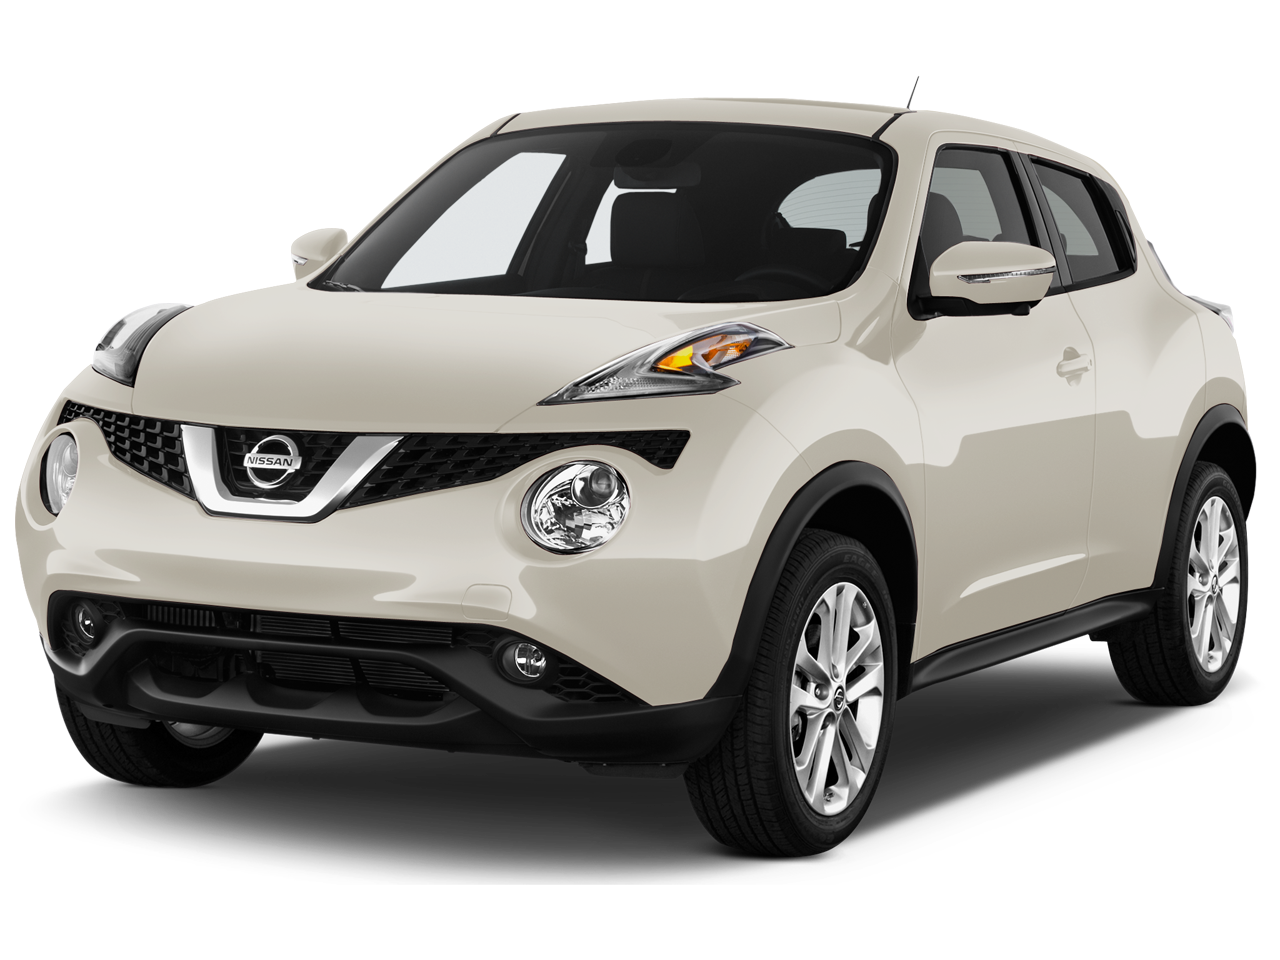 new 2017 nissan juke fwd s near russellville ar orr nissan of paris. Black Bedroom Furniture Sets. Home Design Ideas